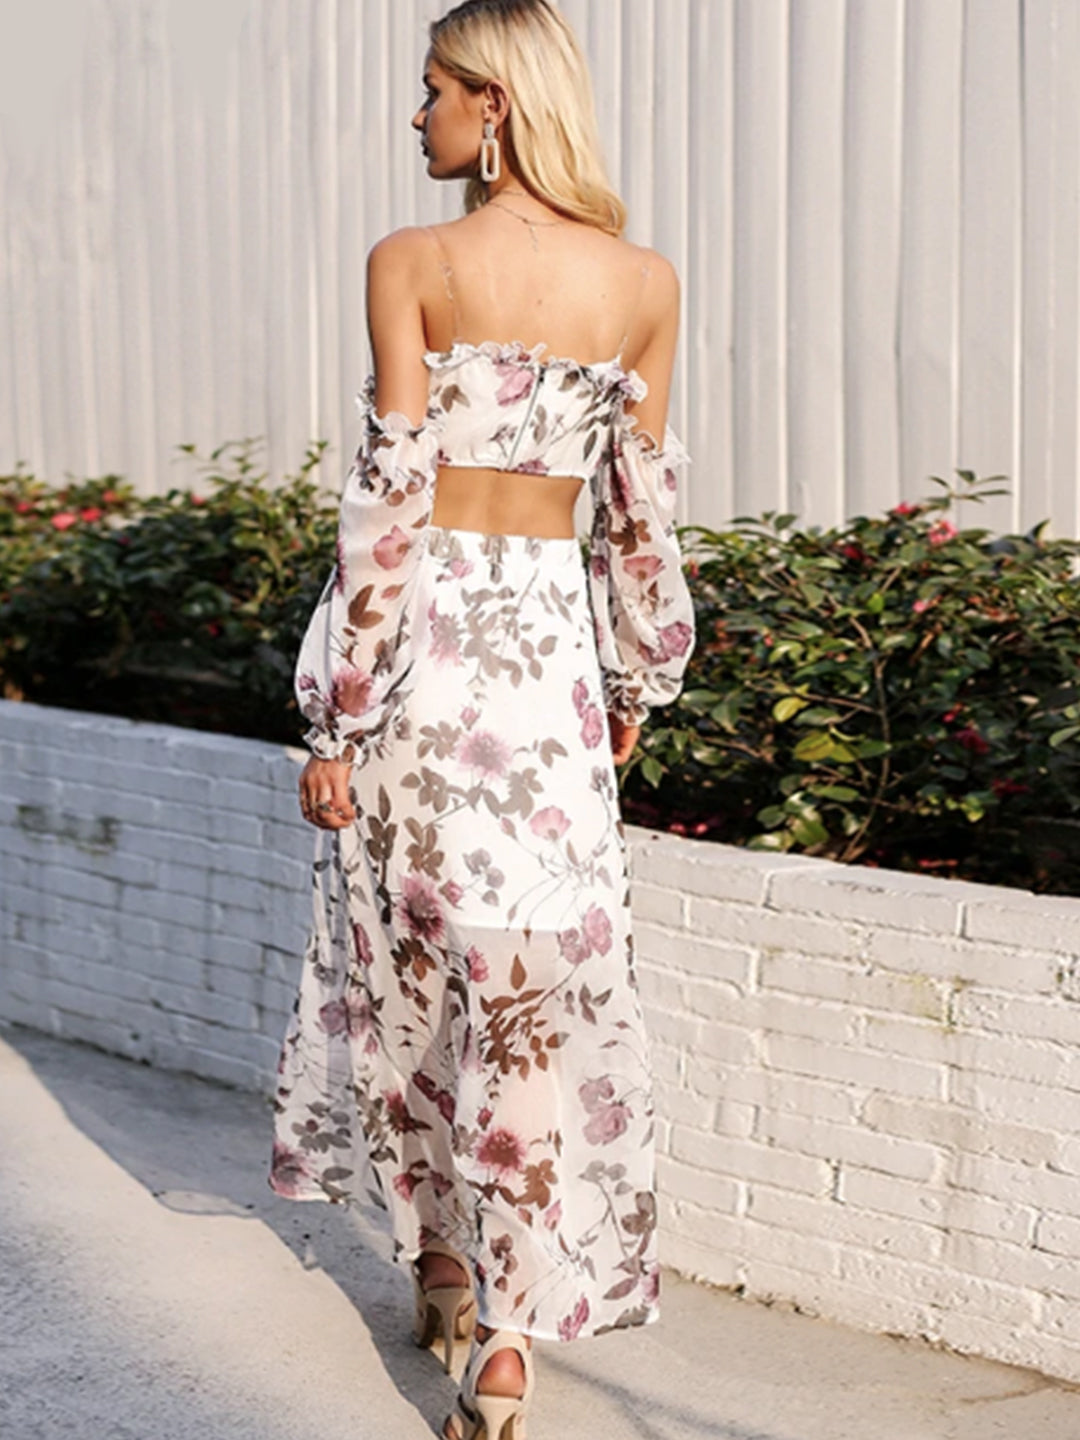 Kim Floral Crop Top & Skirt Co-ord